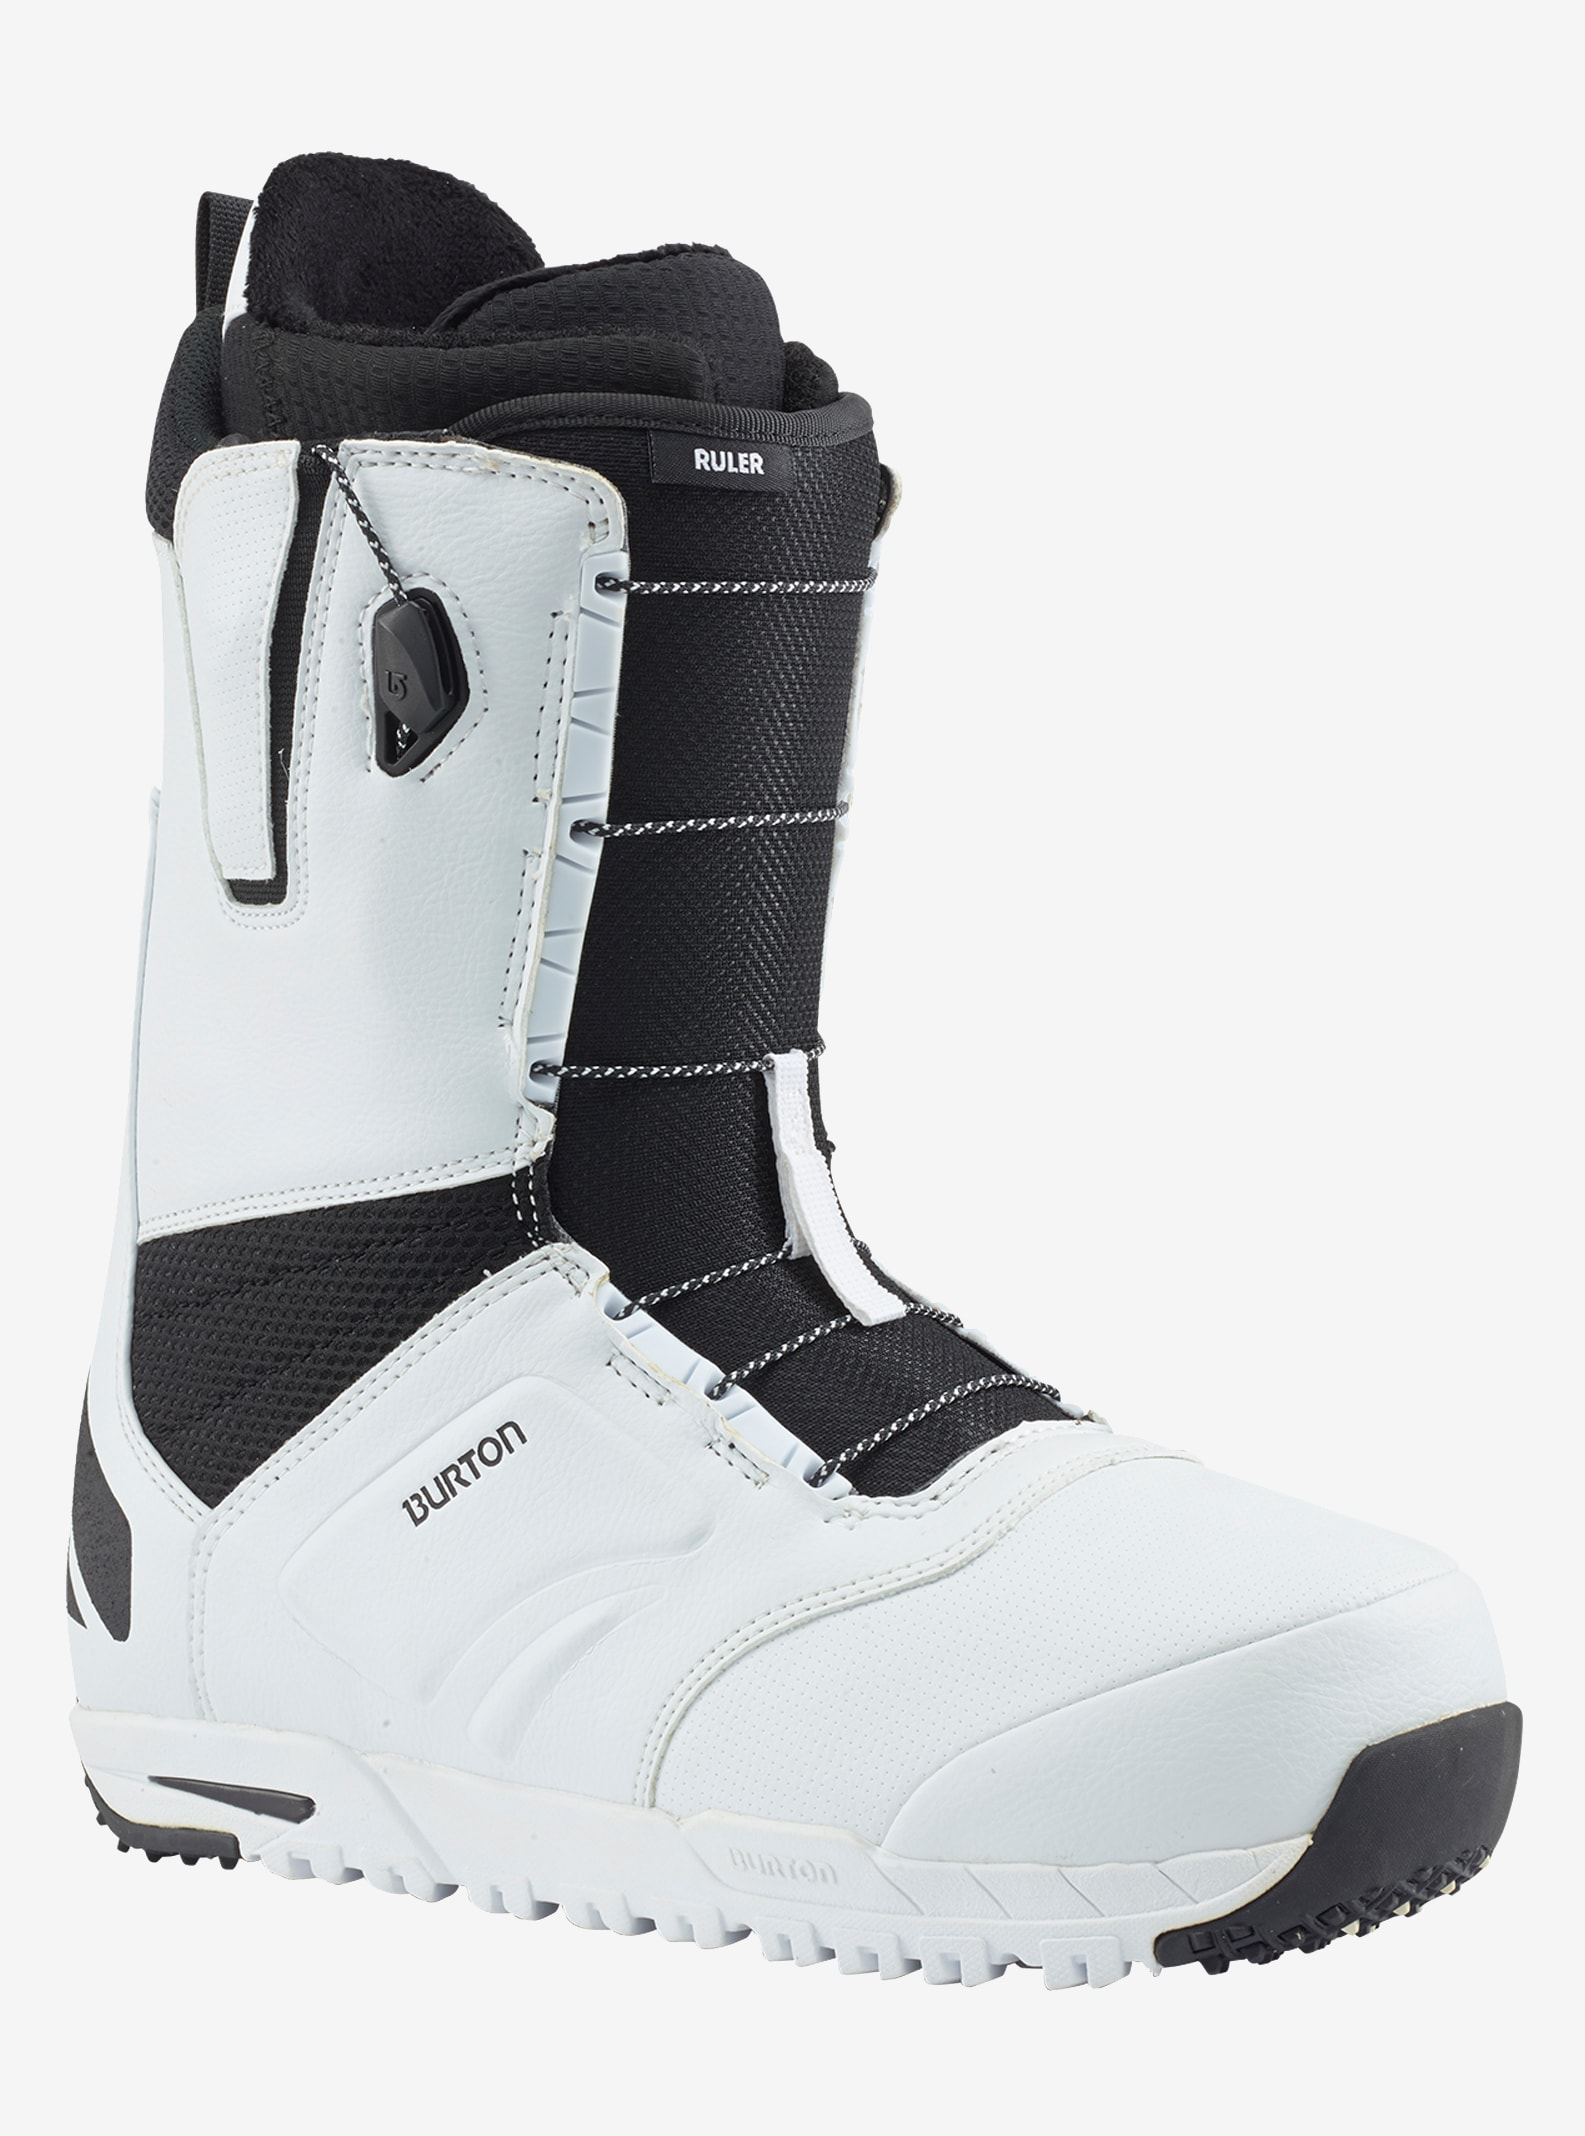 Men's Burton Ruler Snowboard Boot shown in White / Black